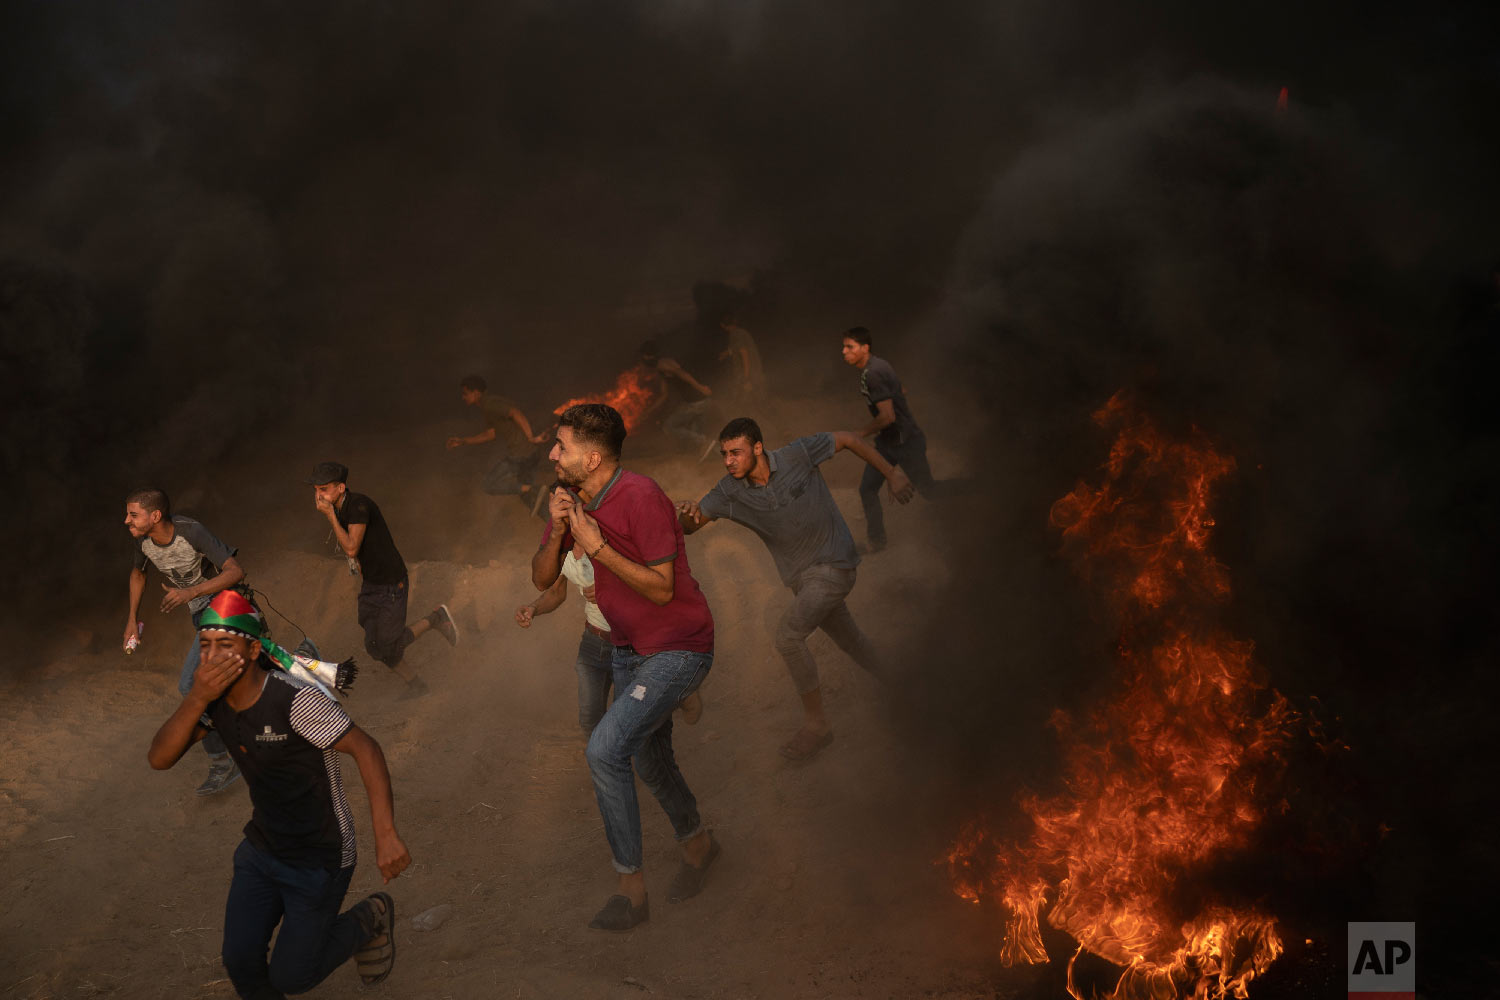 Palestinian protesters run from teargas fired by Israeli troops during a protest at the Gaza Strip's border with Israel, east of Gaza City, Aug. 31, 2018. (AP Photo/Felipe Dana)